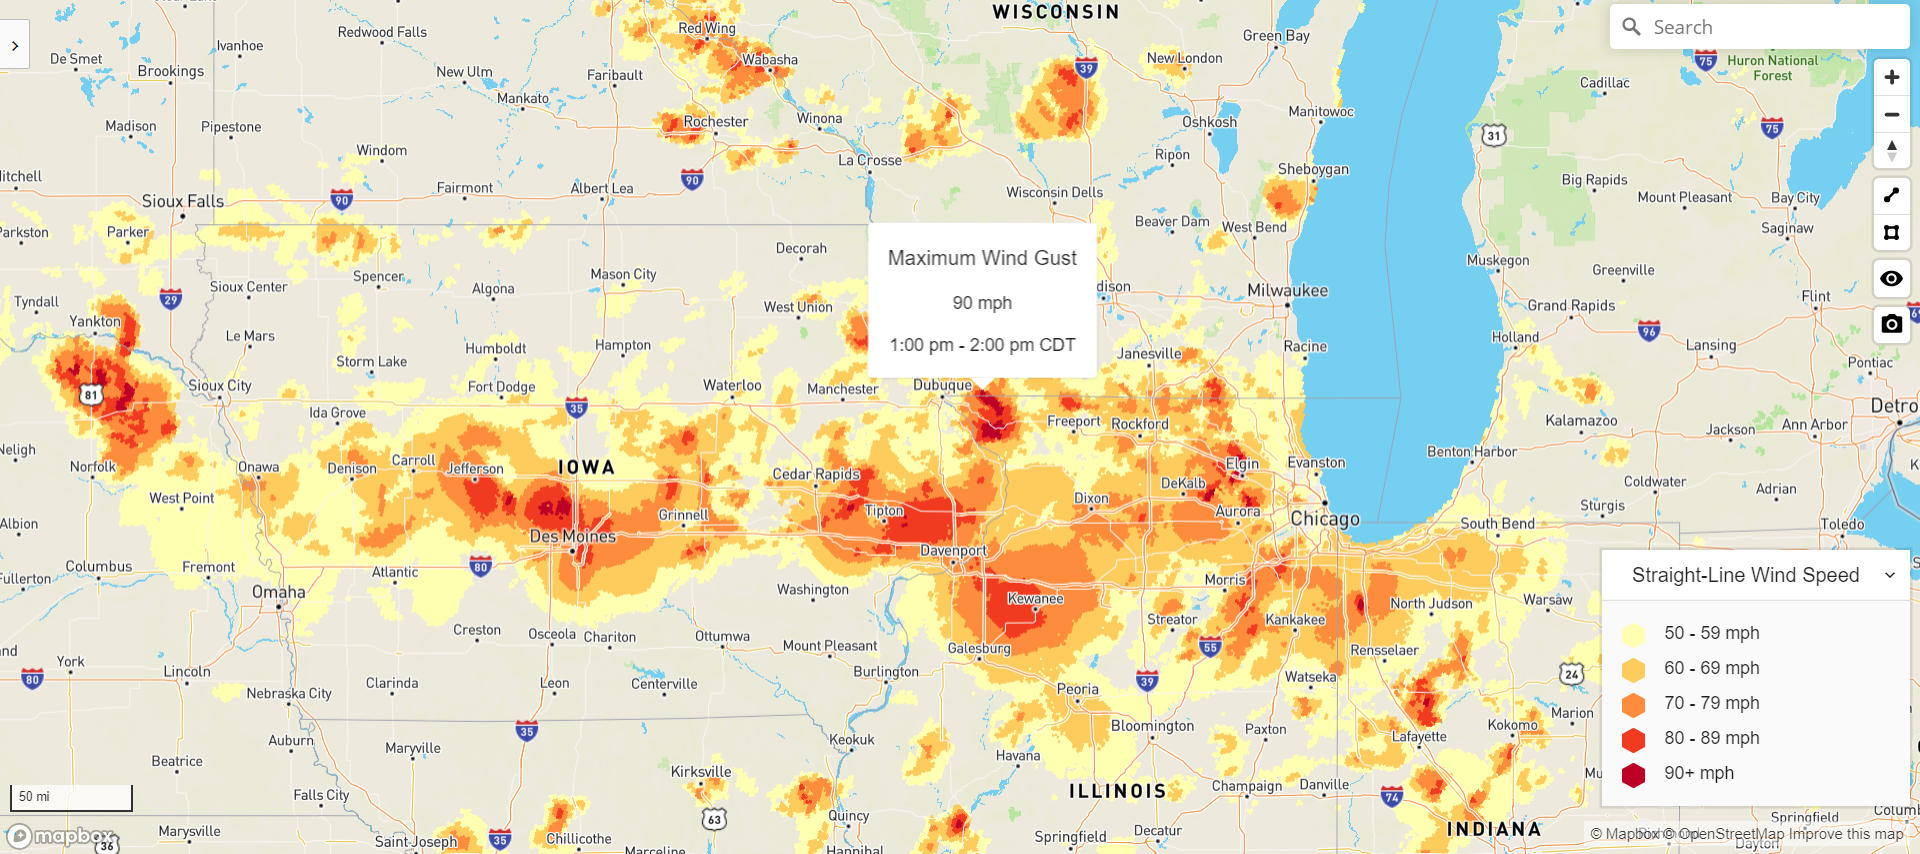 Midwest Derecho post-event forensics for insurance